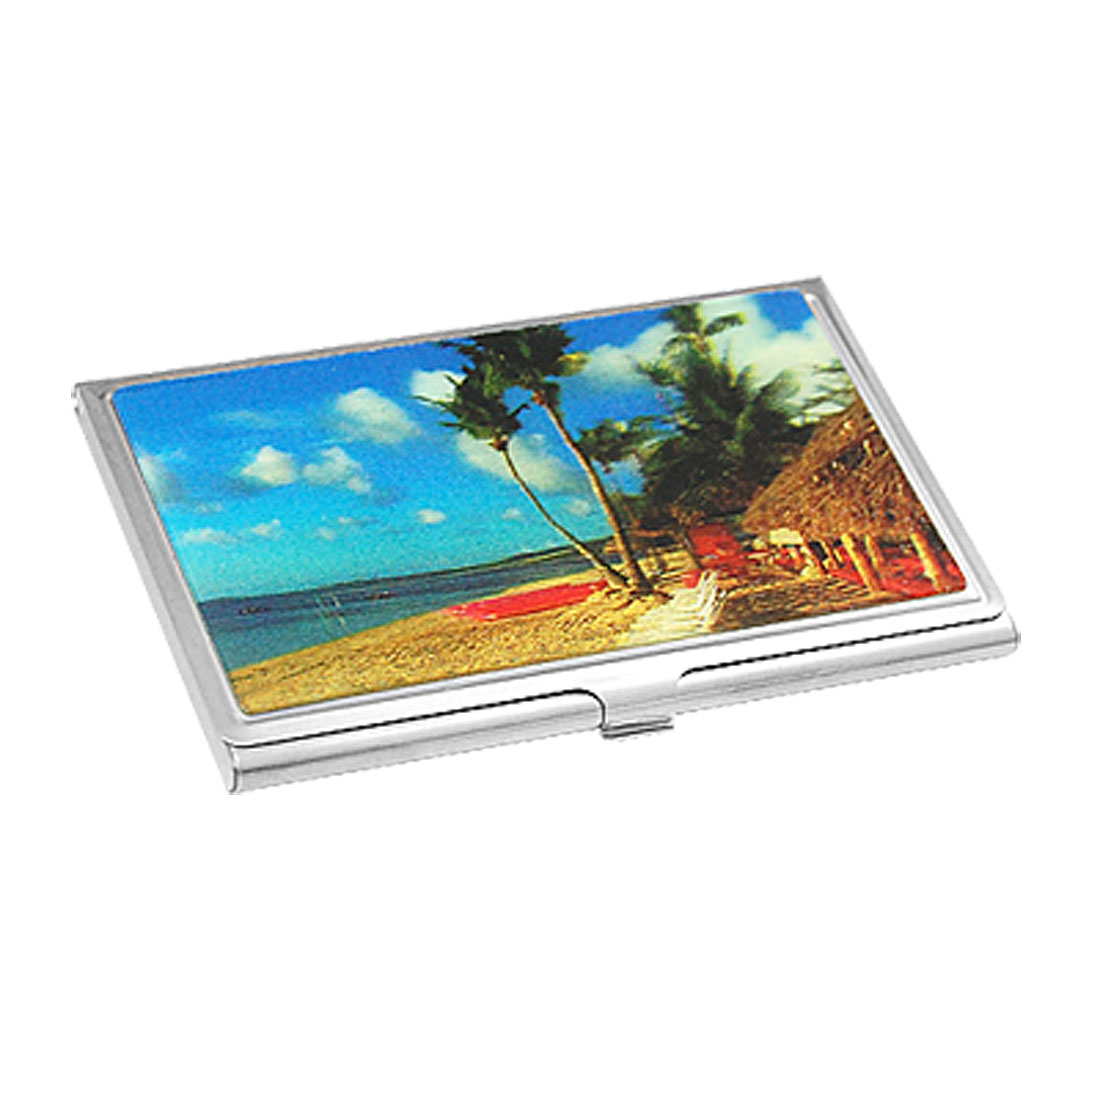 Business Credit Name Card 3D Landscape Print Steel Case